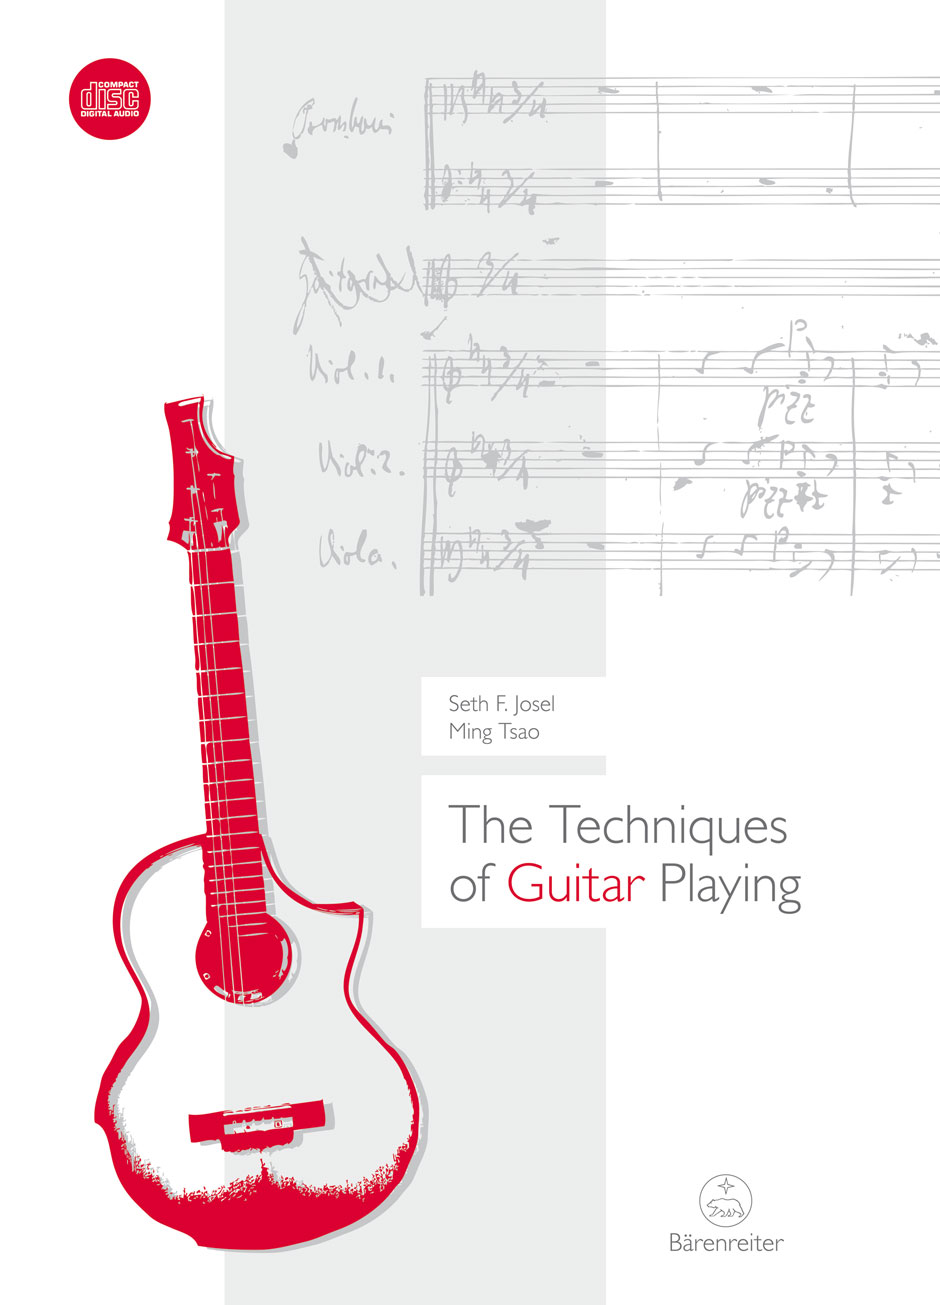 guitar playing techniques The techniques of guitar playing paperback – august 13, 2014 by seth f josel (author).